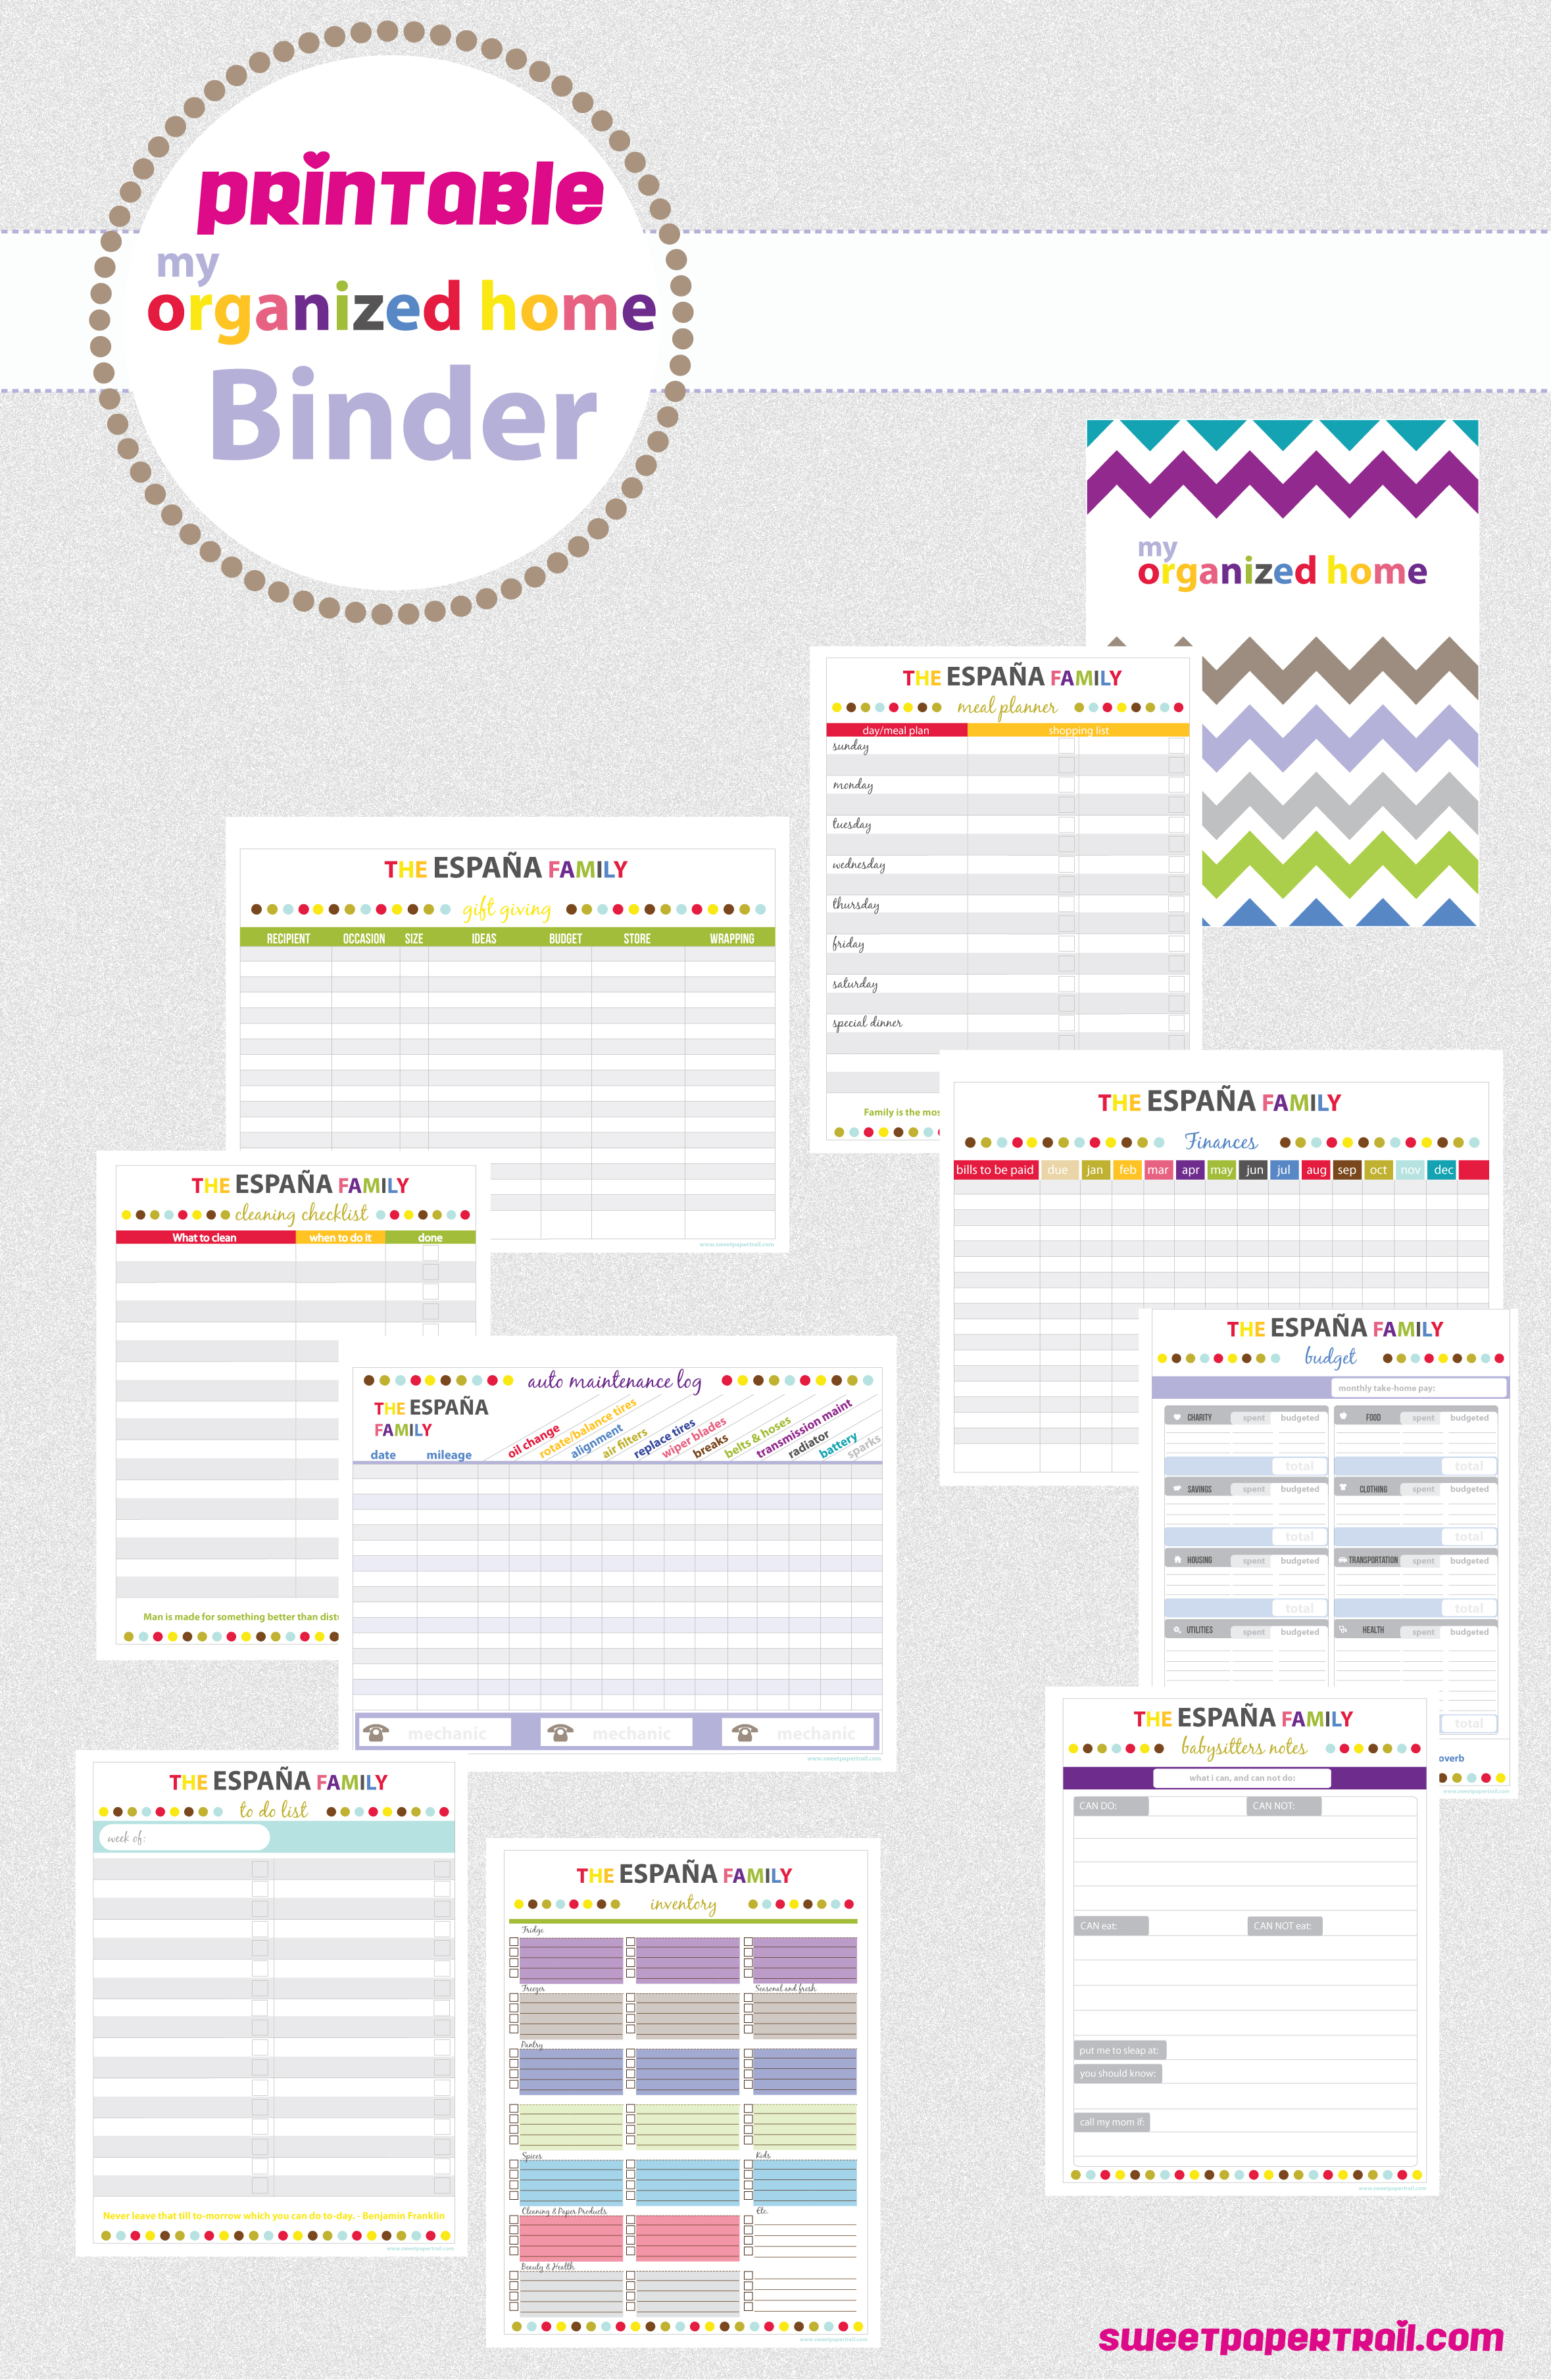 7 Images of Organization Binder Printable Planner